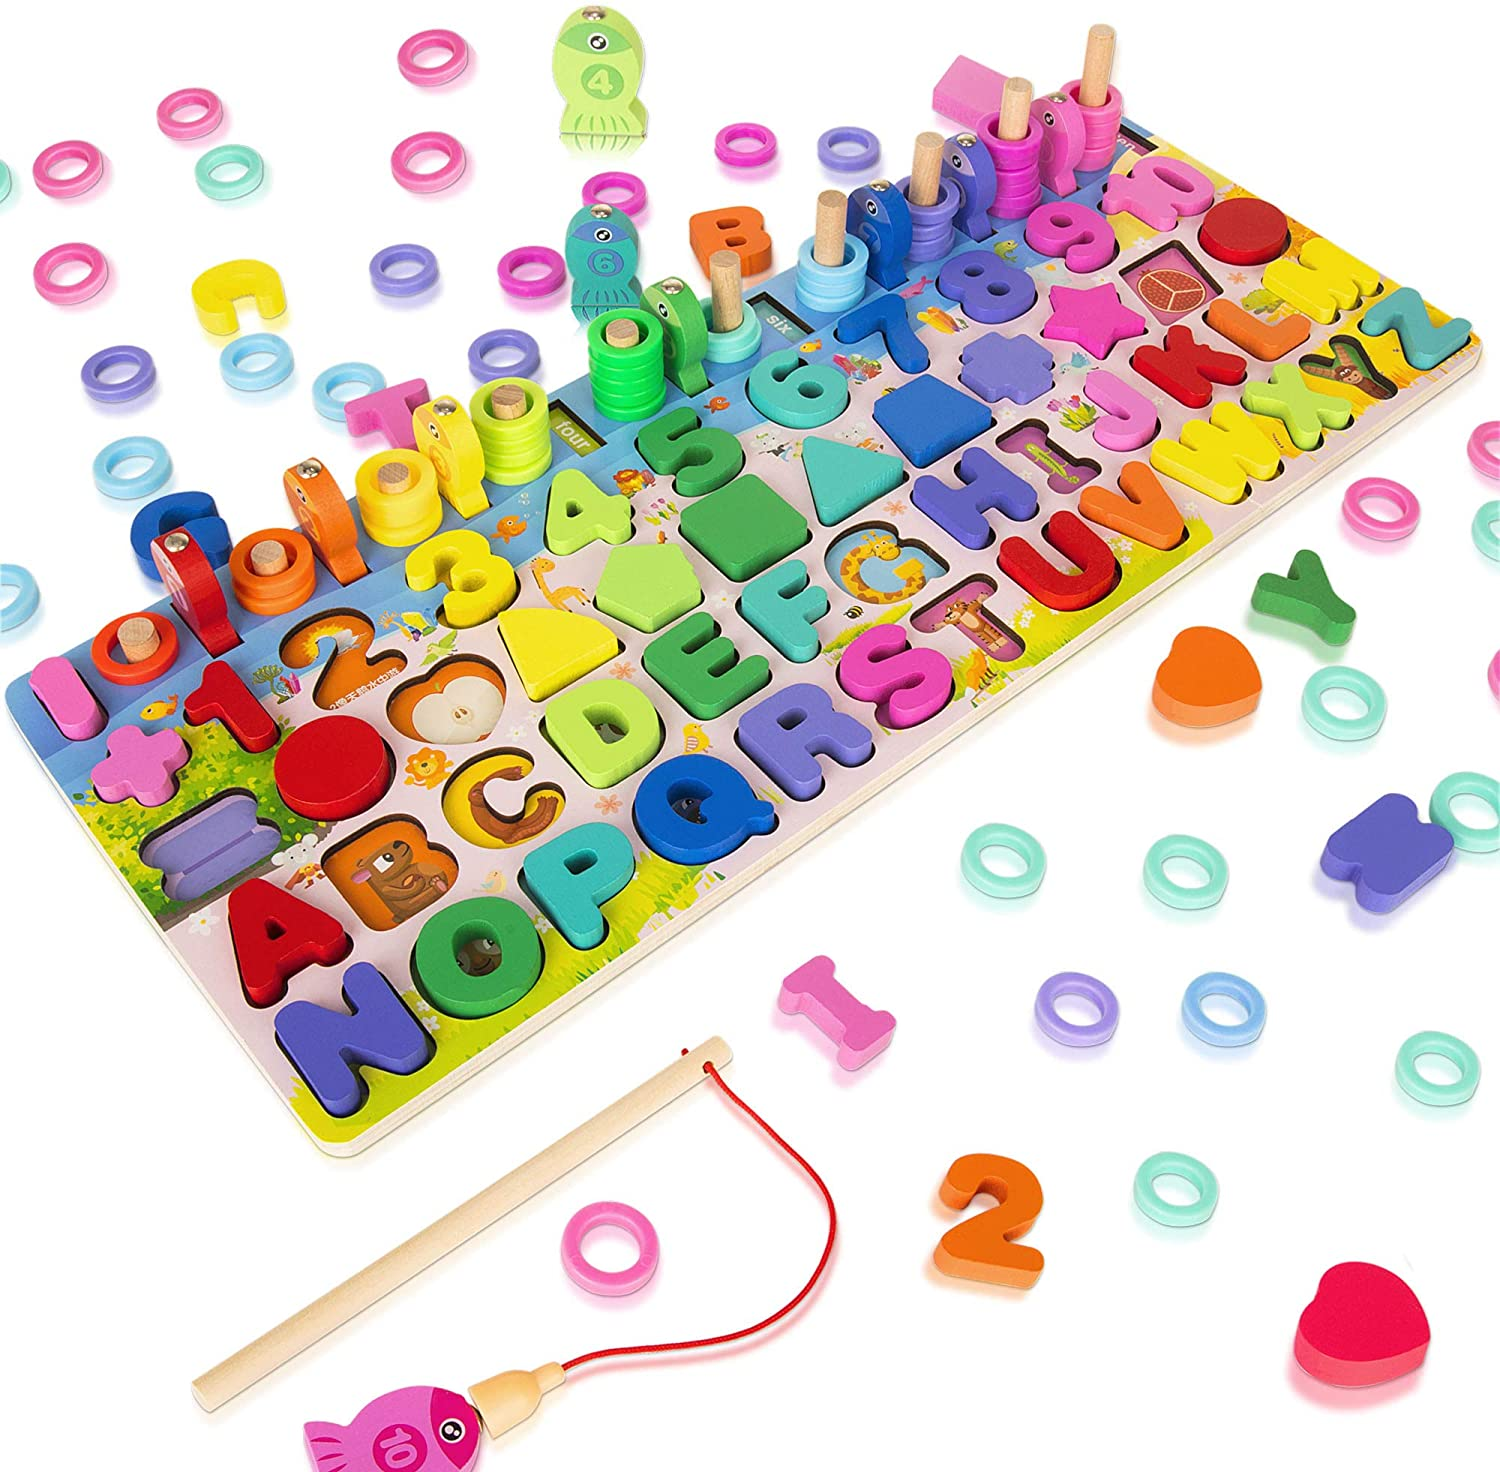 Wooden Magnetic Puzzles for Toddlers, 5-in-1 Color Alphabet Shape Number Sorting Fishing Game Toys